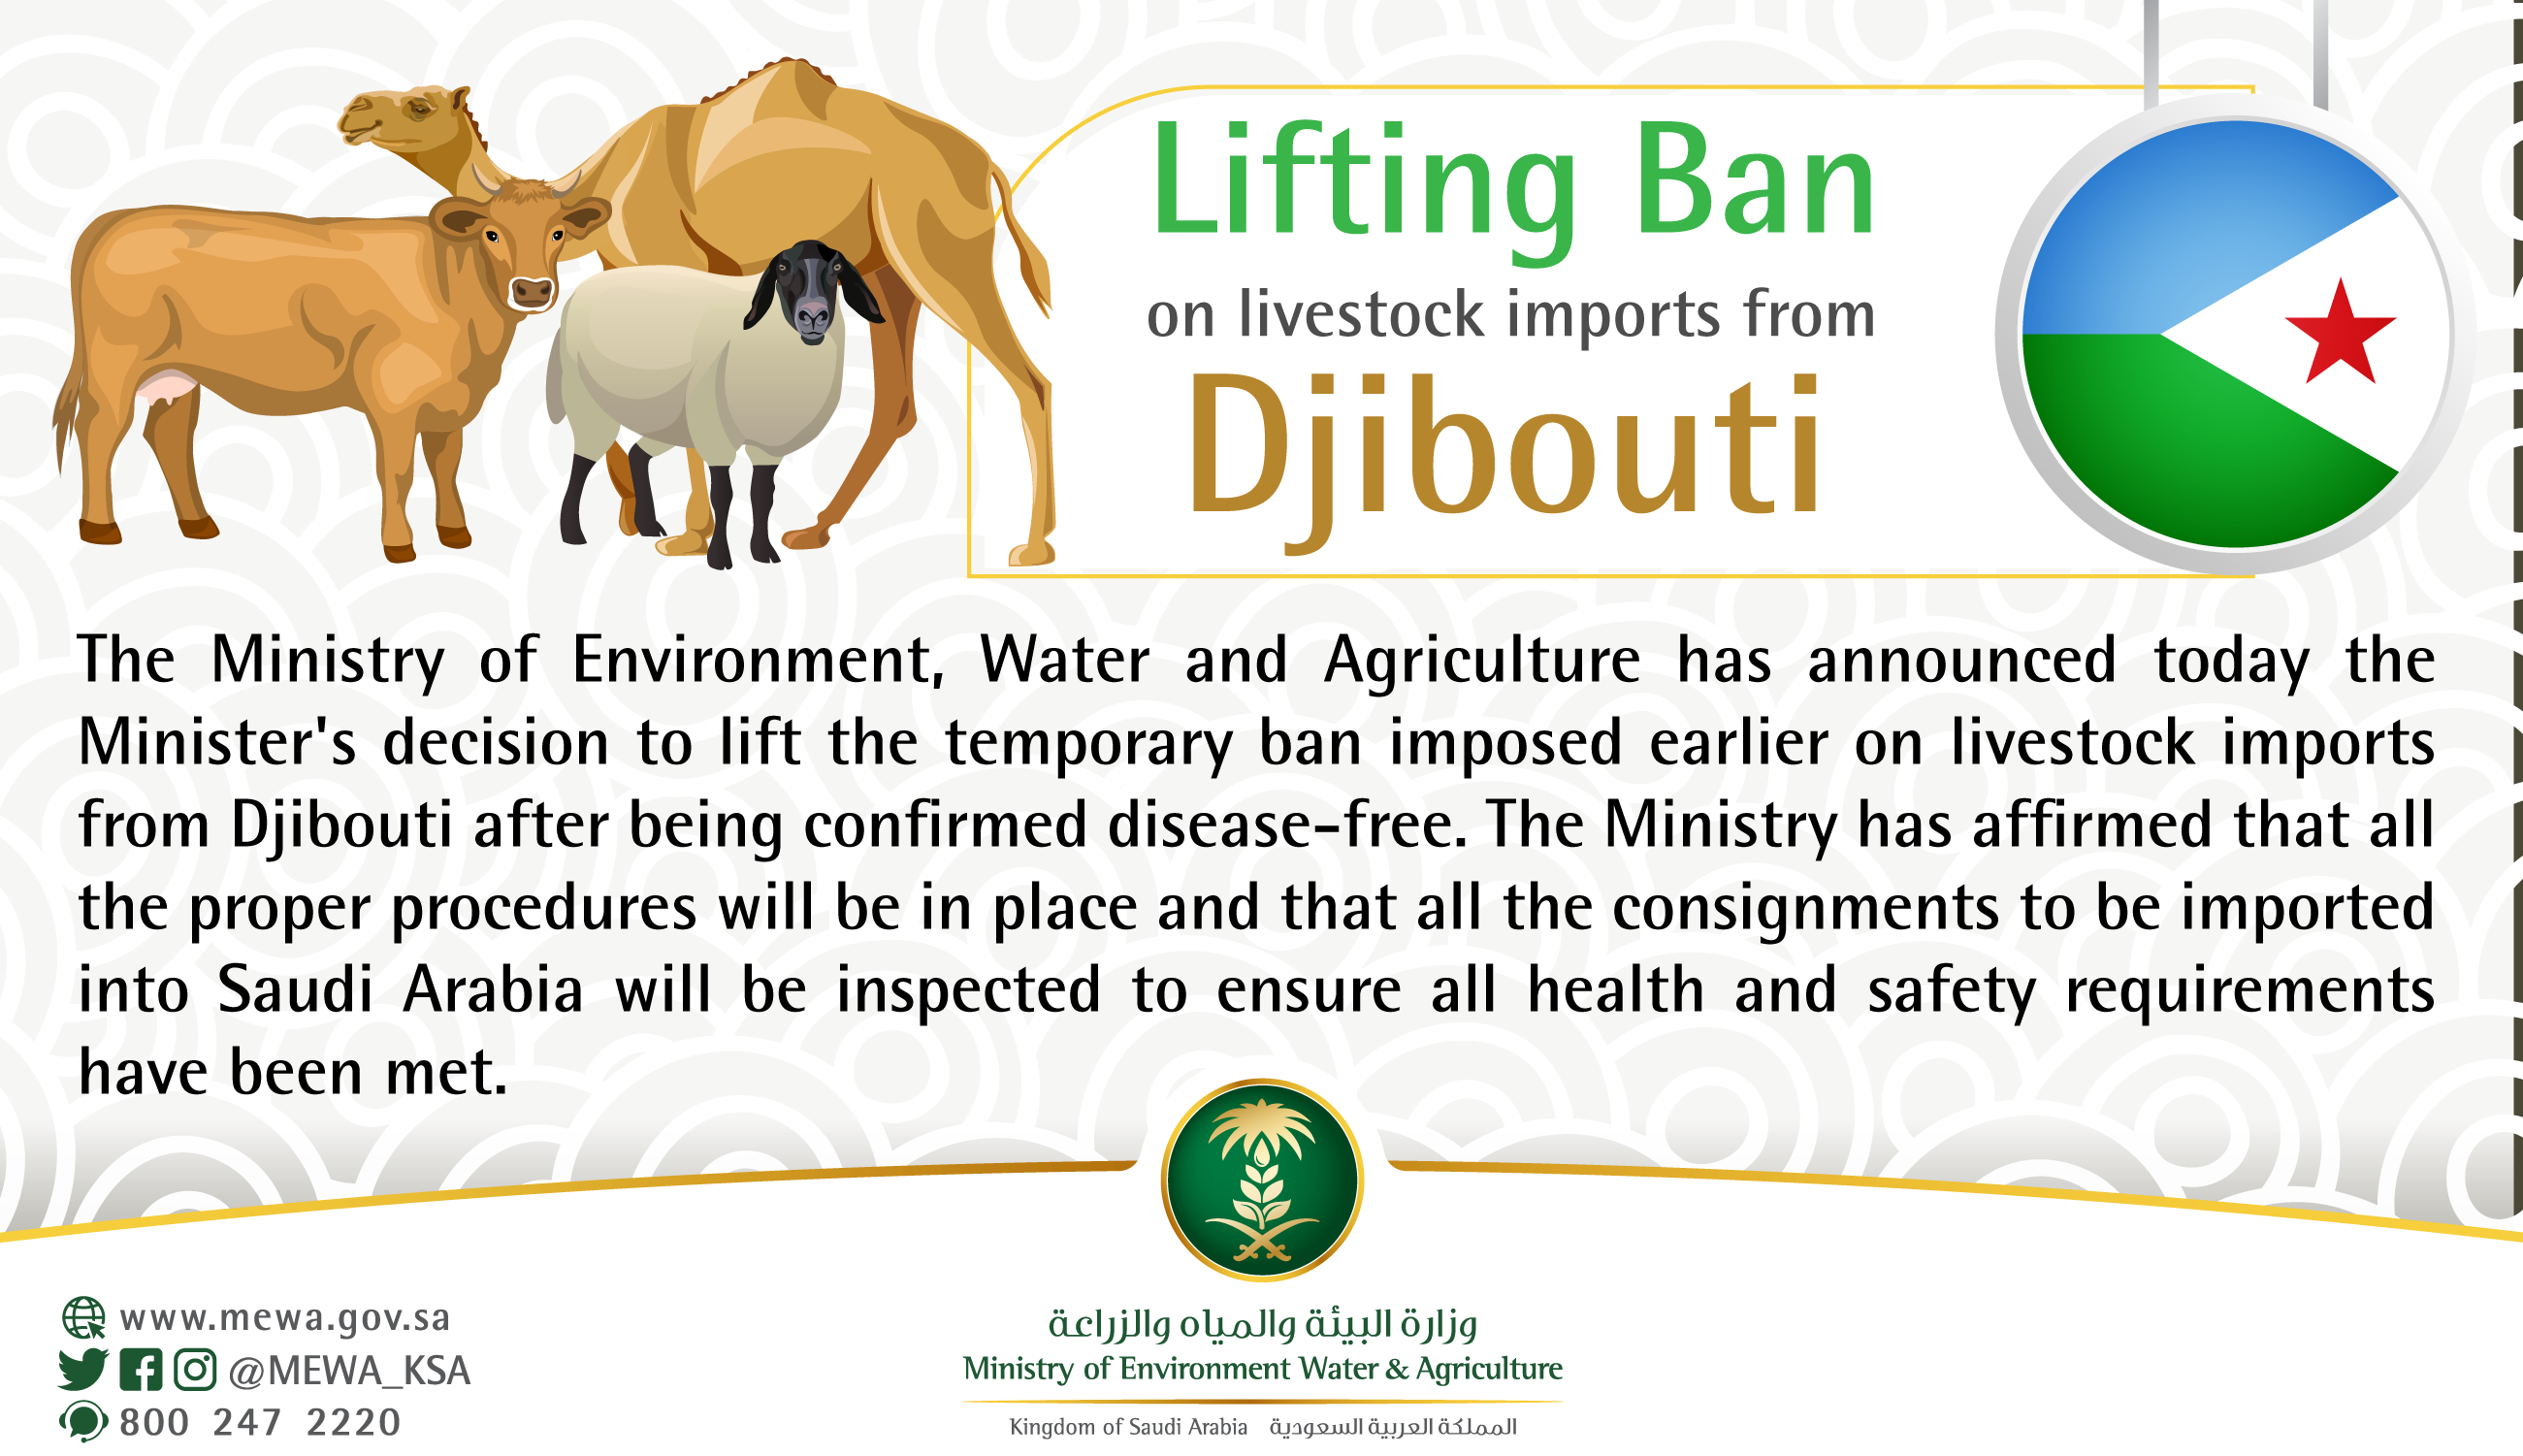 MEWA lifts ban on livestock imports from Djibouti